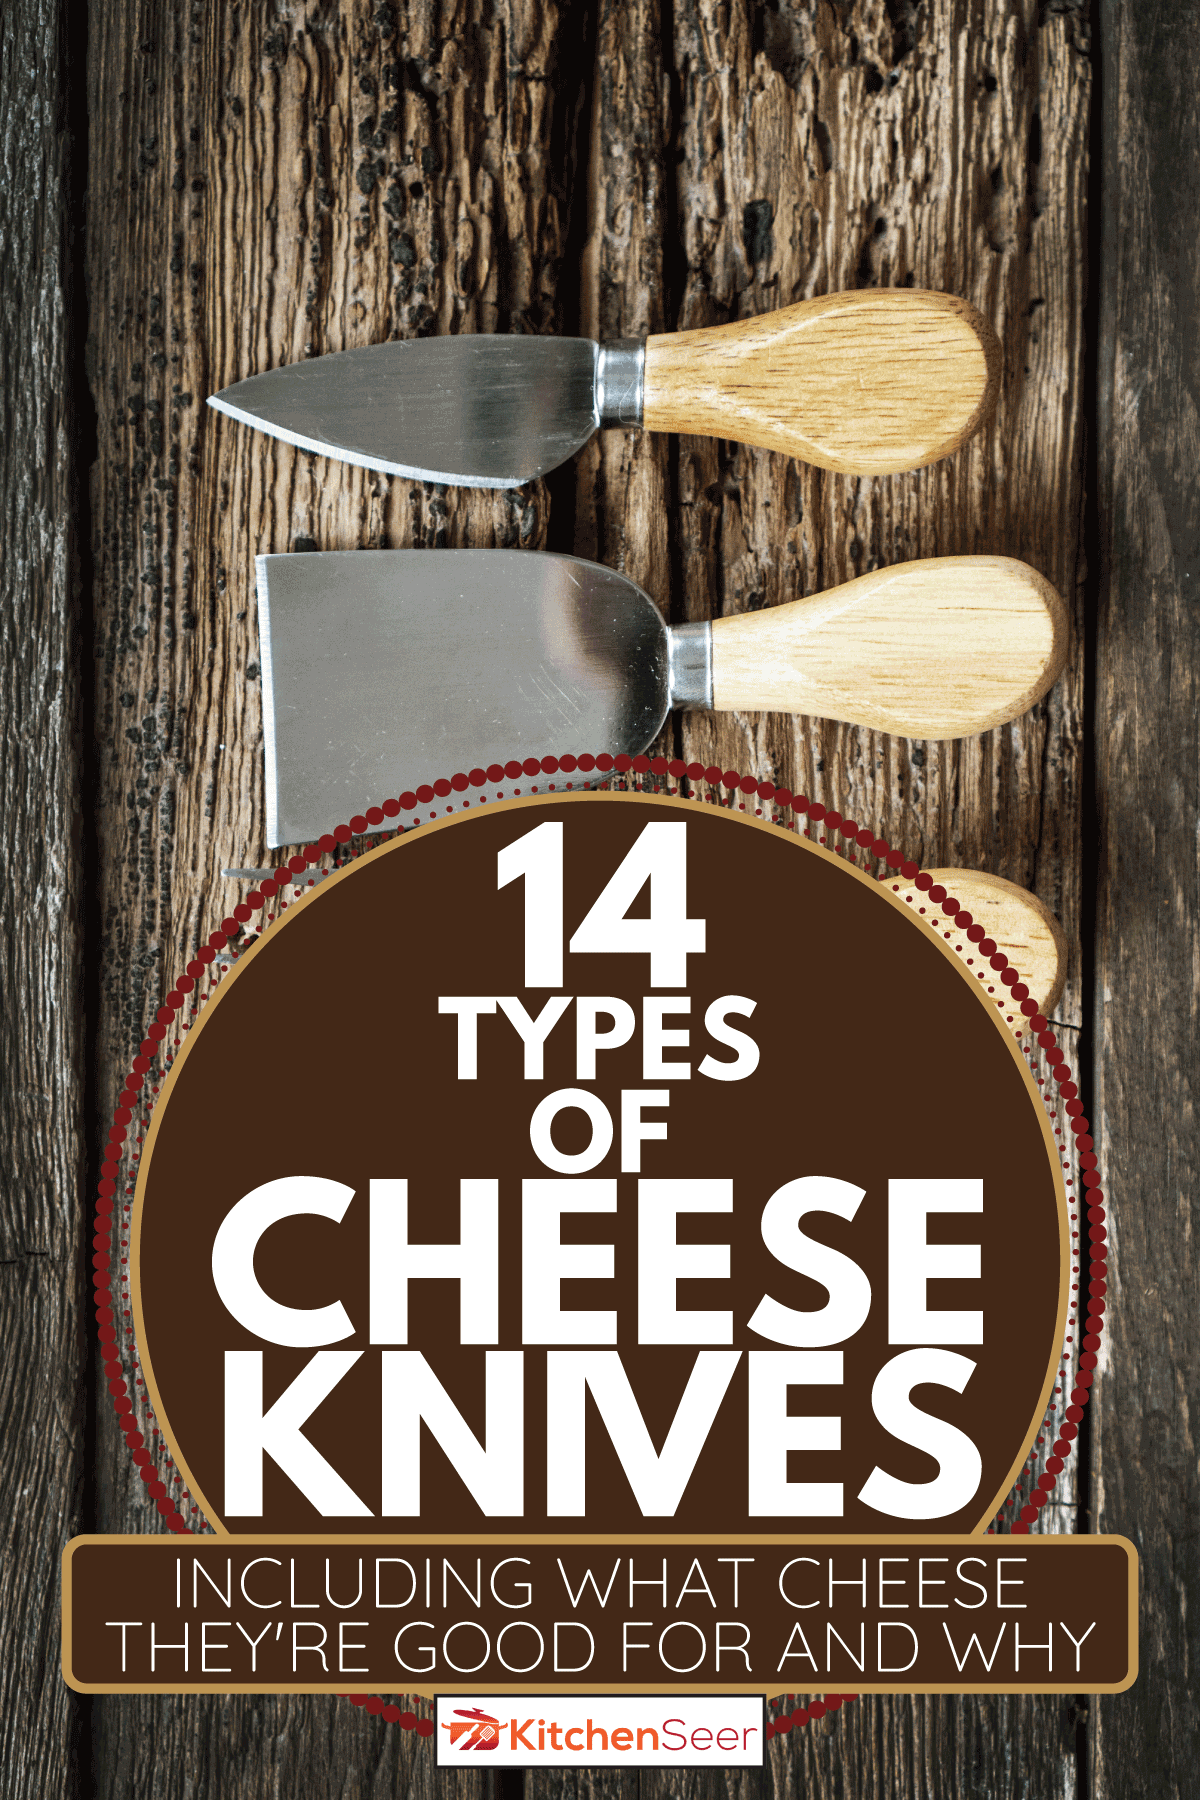 Cheese knife set on the wooden background. 14 Types Of Cheese Knives [Inc. What Cheese They're Good For And Why]